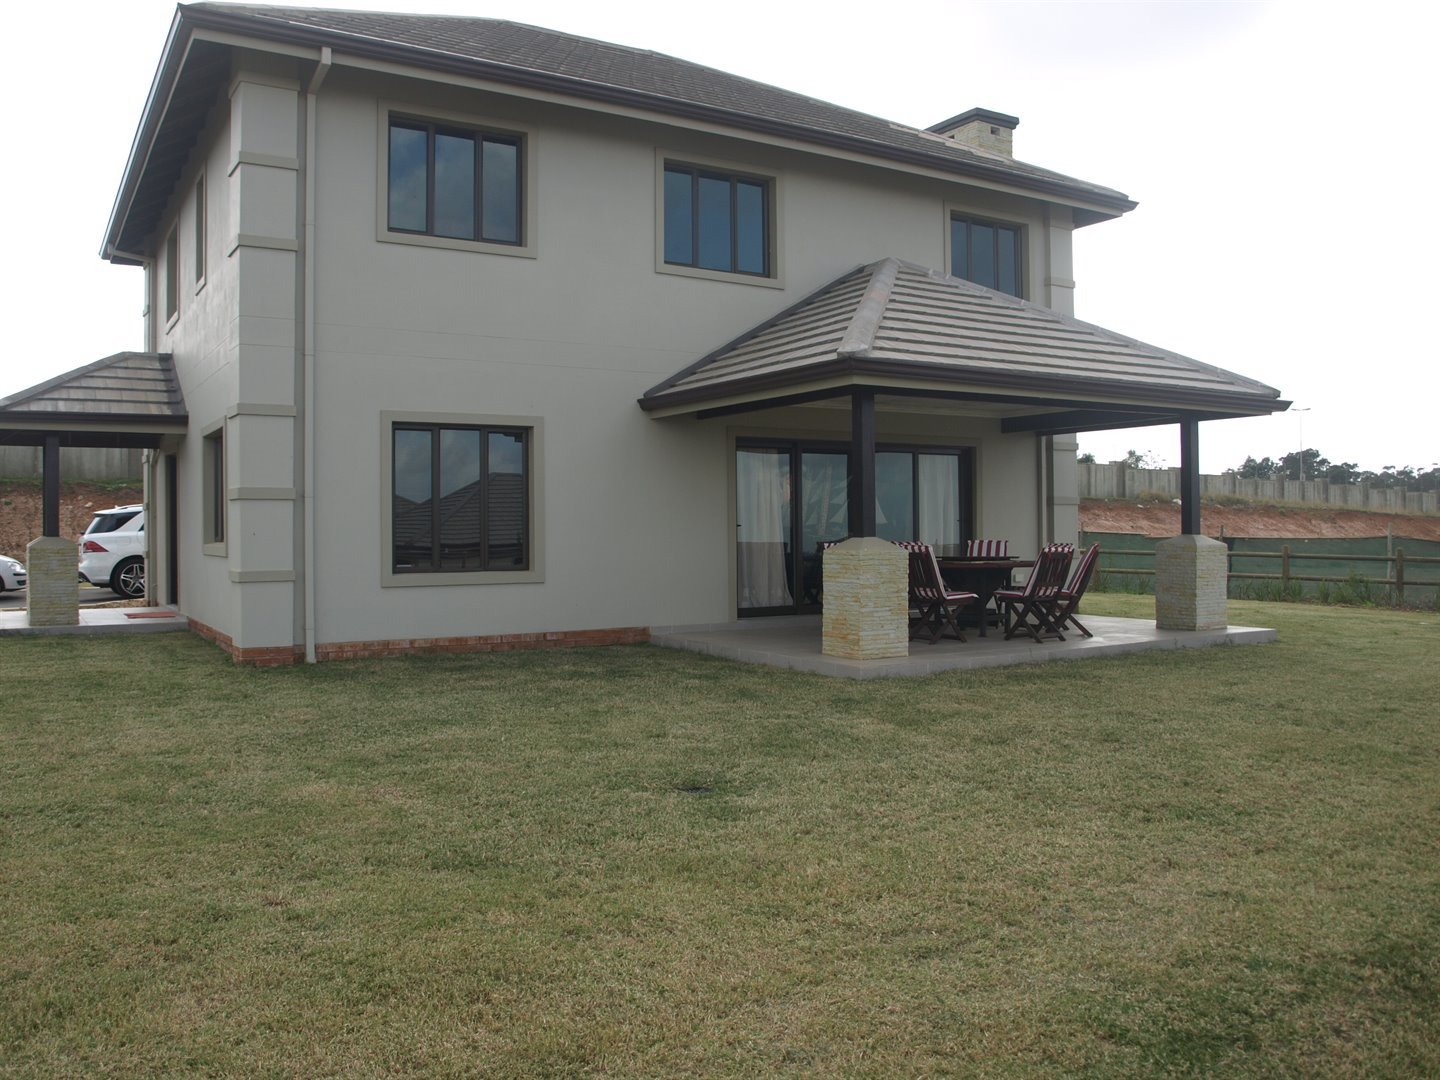 Kloof, Everton Property  | Houses For Sale Everton, Everton, Townhouse 3 bedrooms property for sale Price:3,150,000